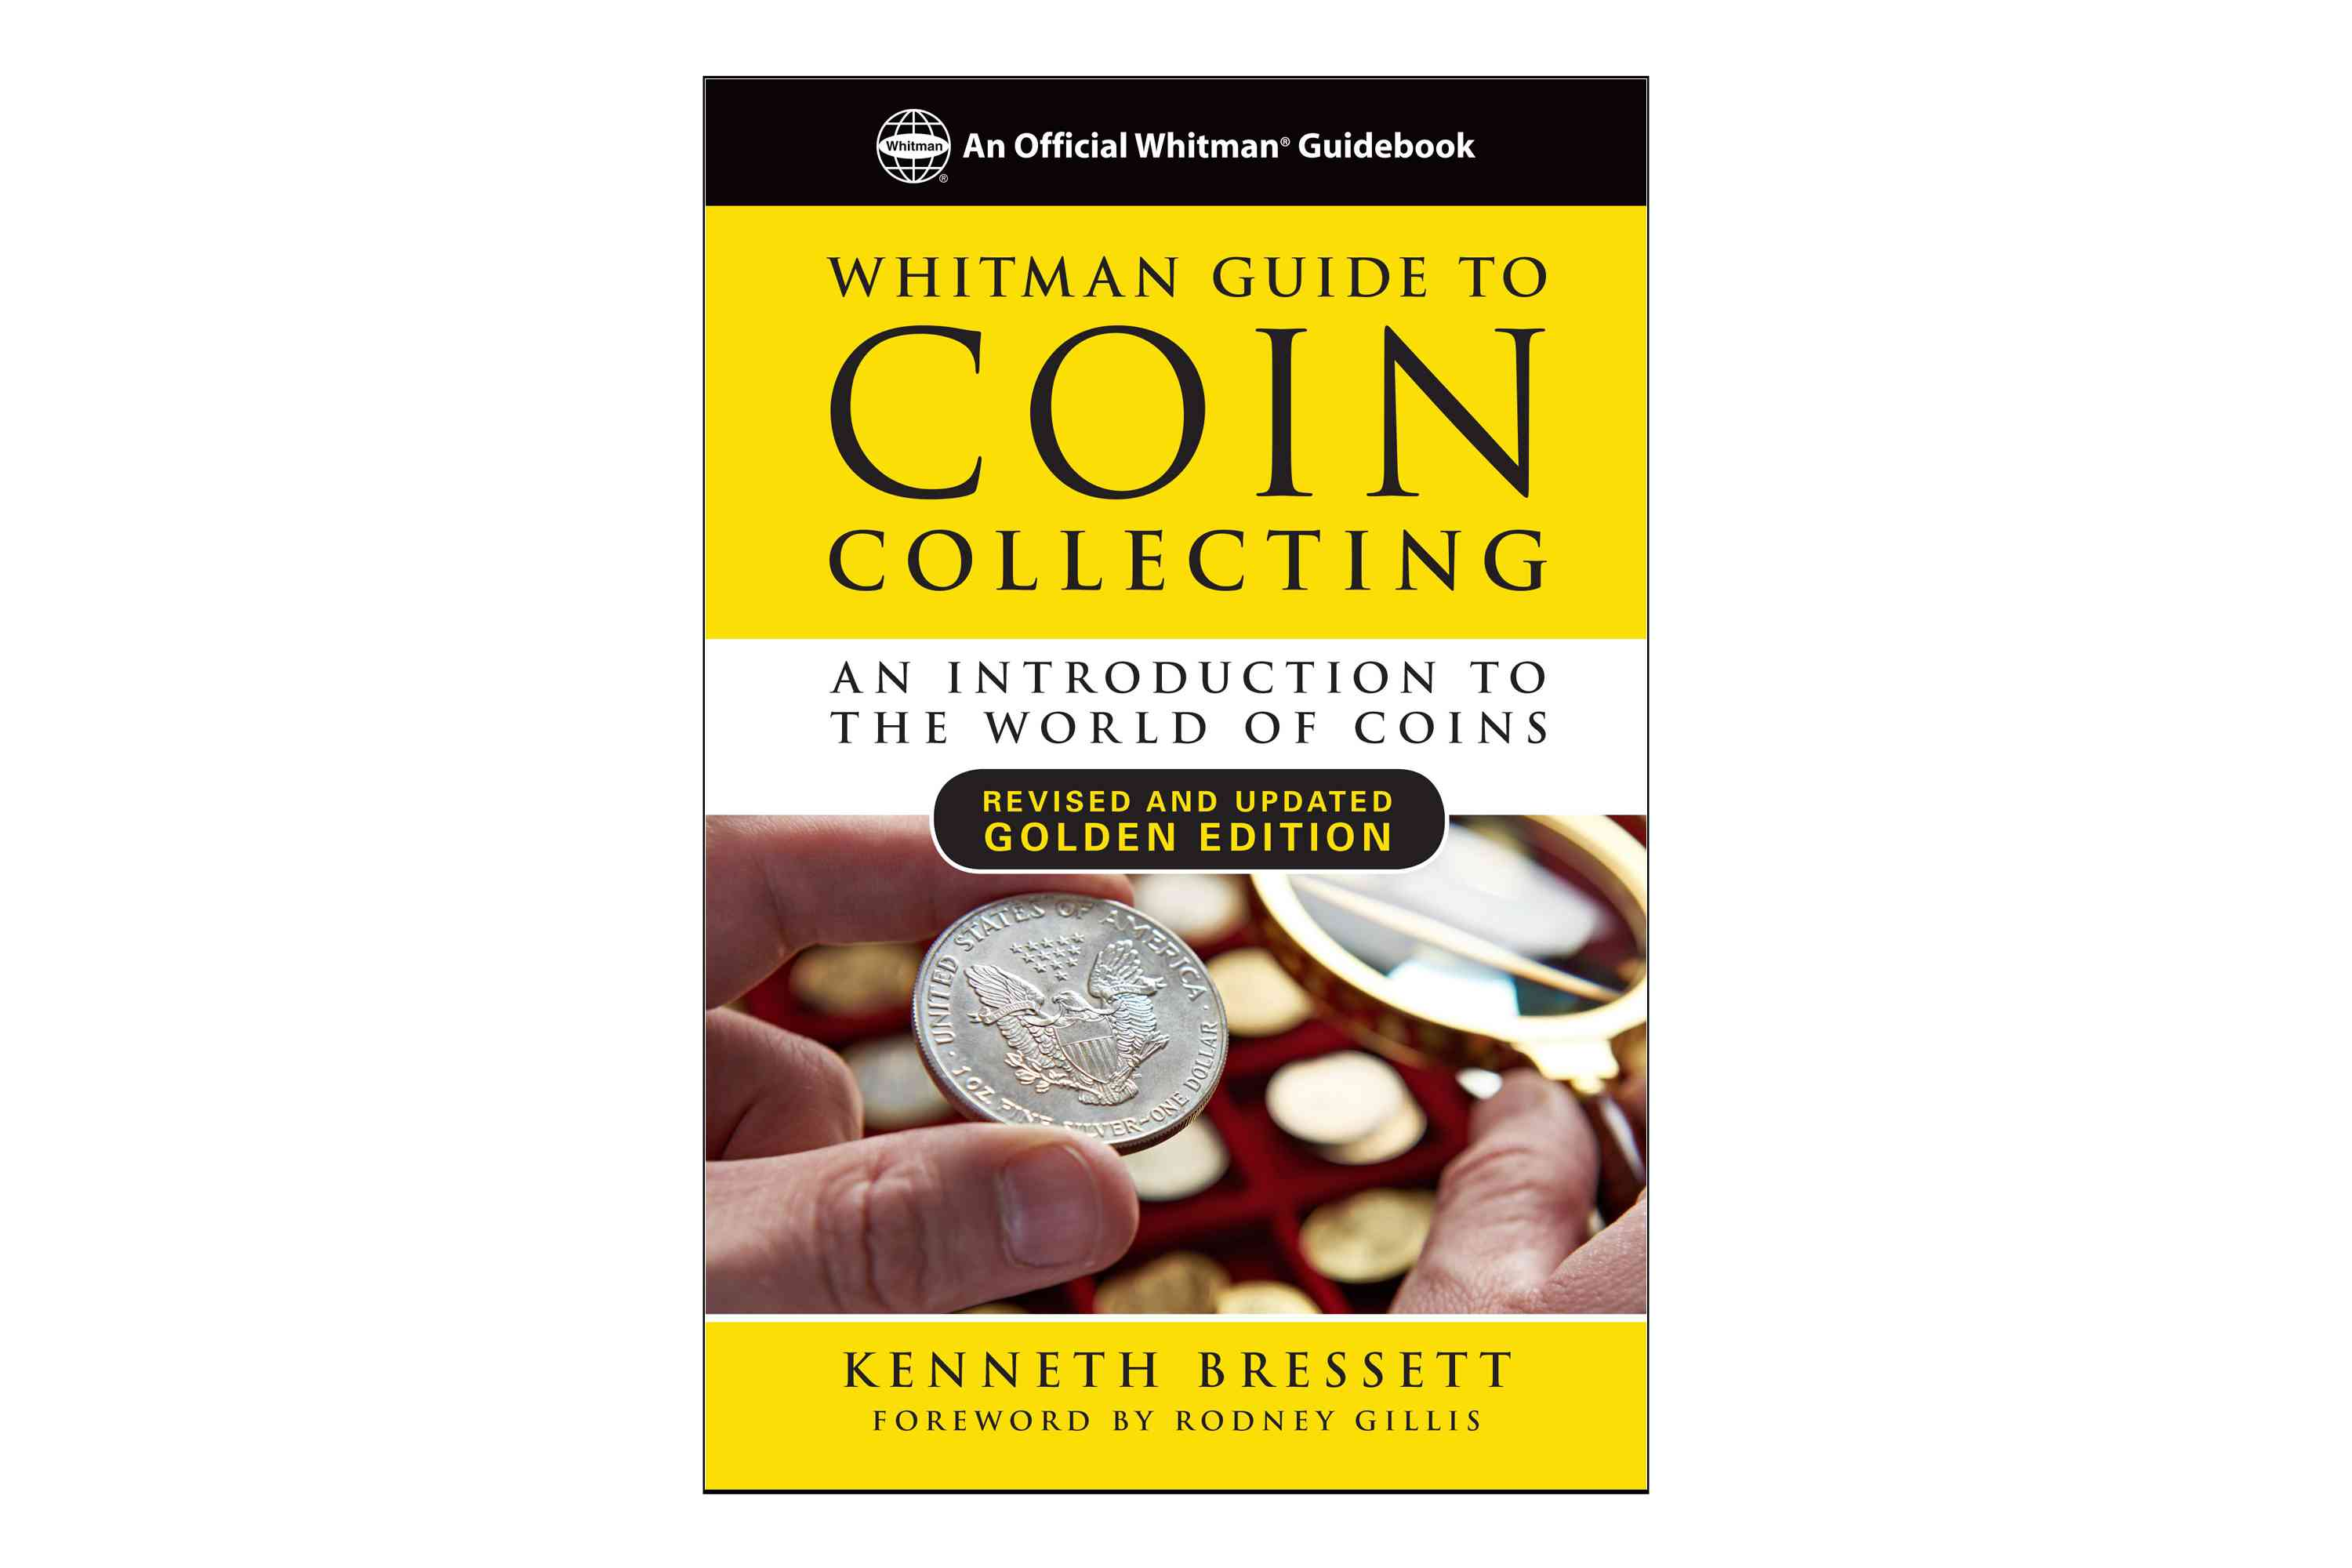 Whitman Guide to Coin Collecting, an Introduction to the World of Coins, by Kenneth Bressett